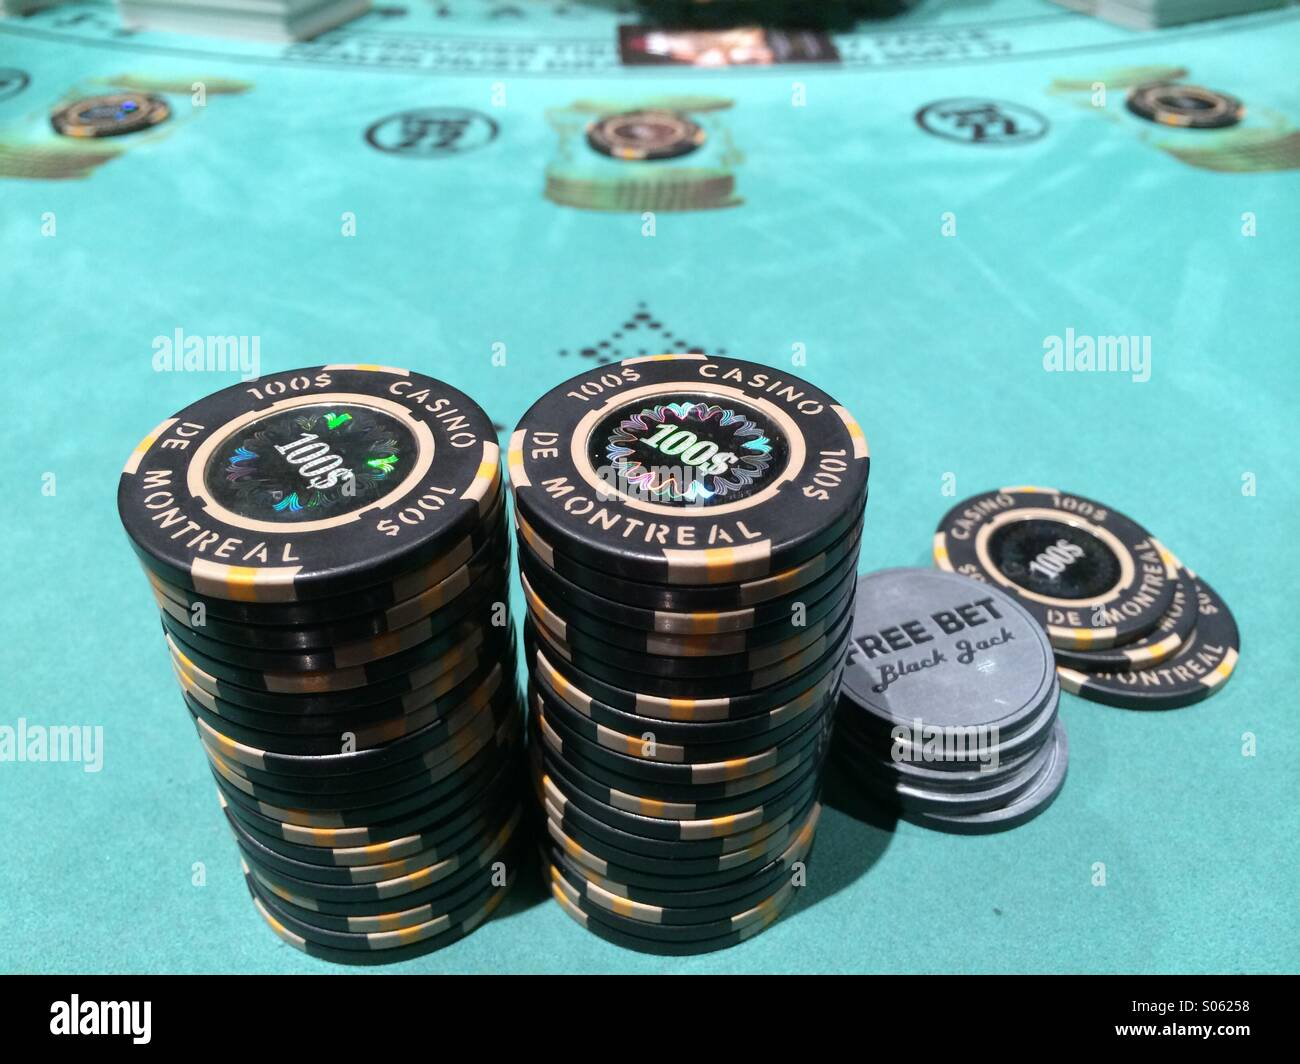 Taken on Blackjack Free Bet Table - Stock Image